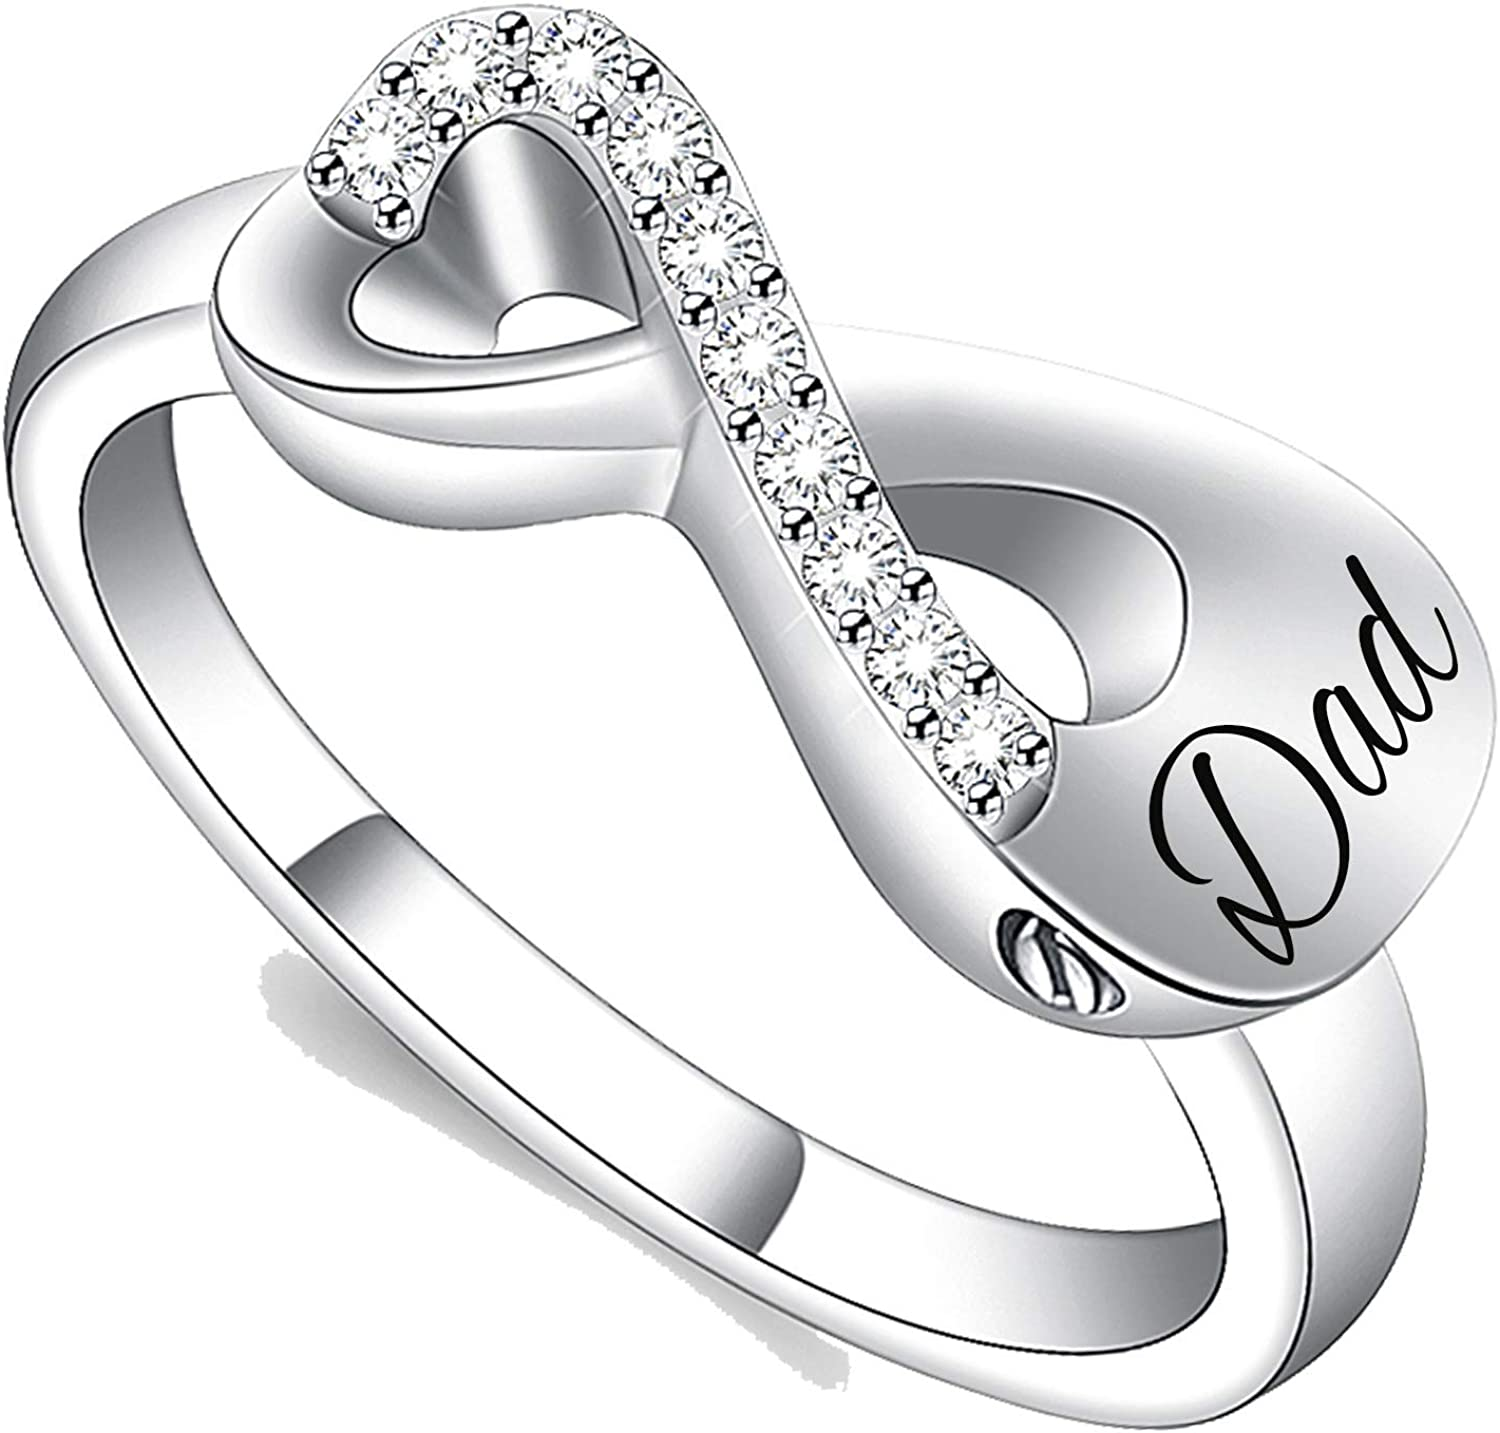 Yinplsmemory Cremation Jewelry Infinity Ring Love Sale Special Special Campaign Price for